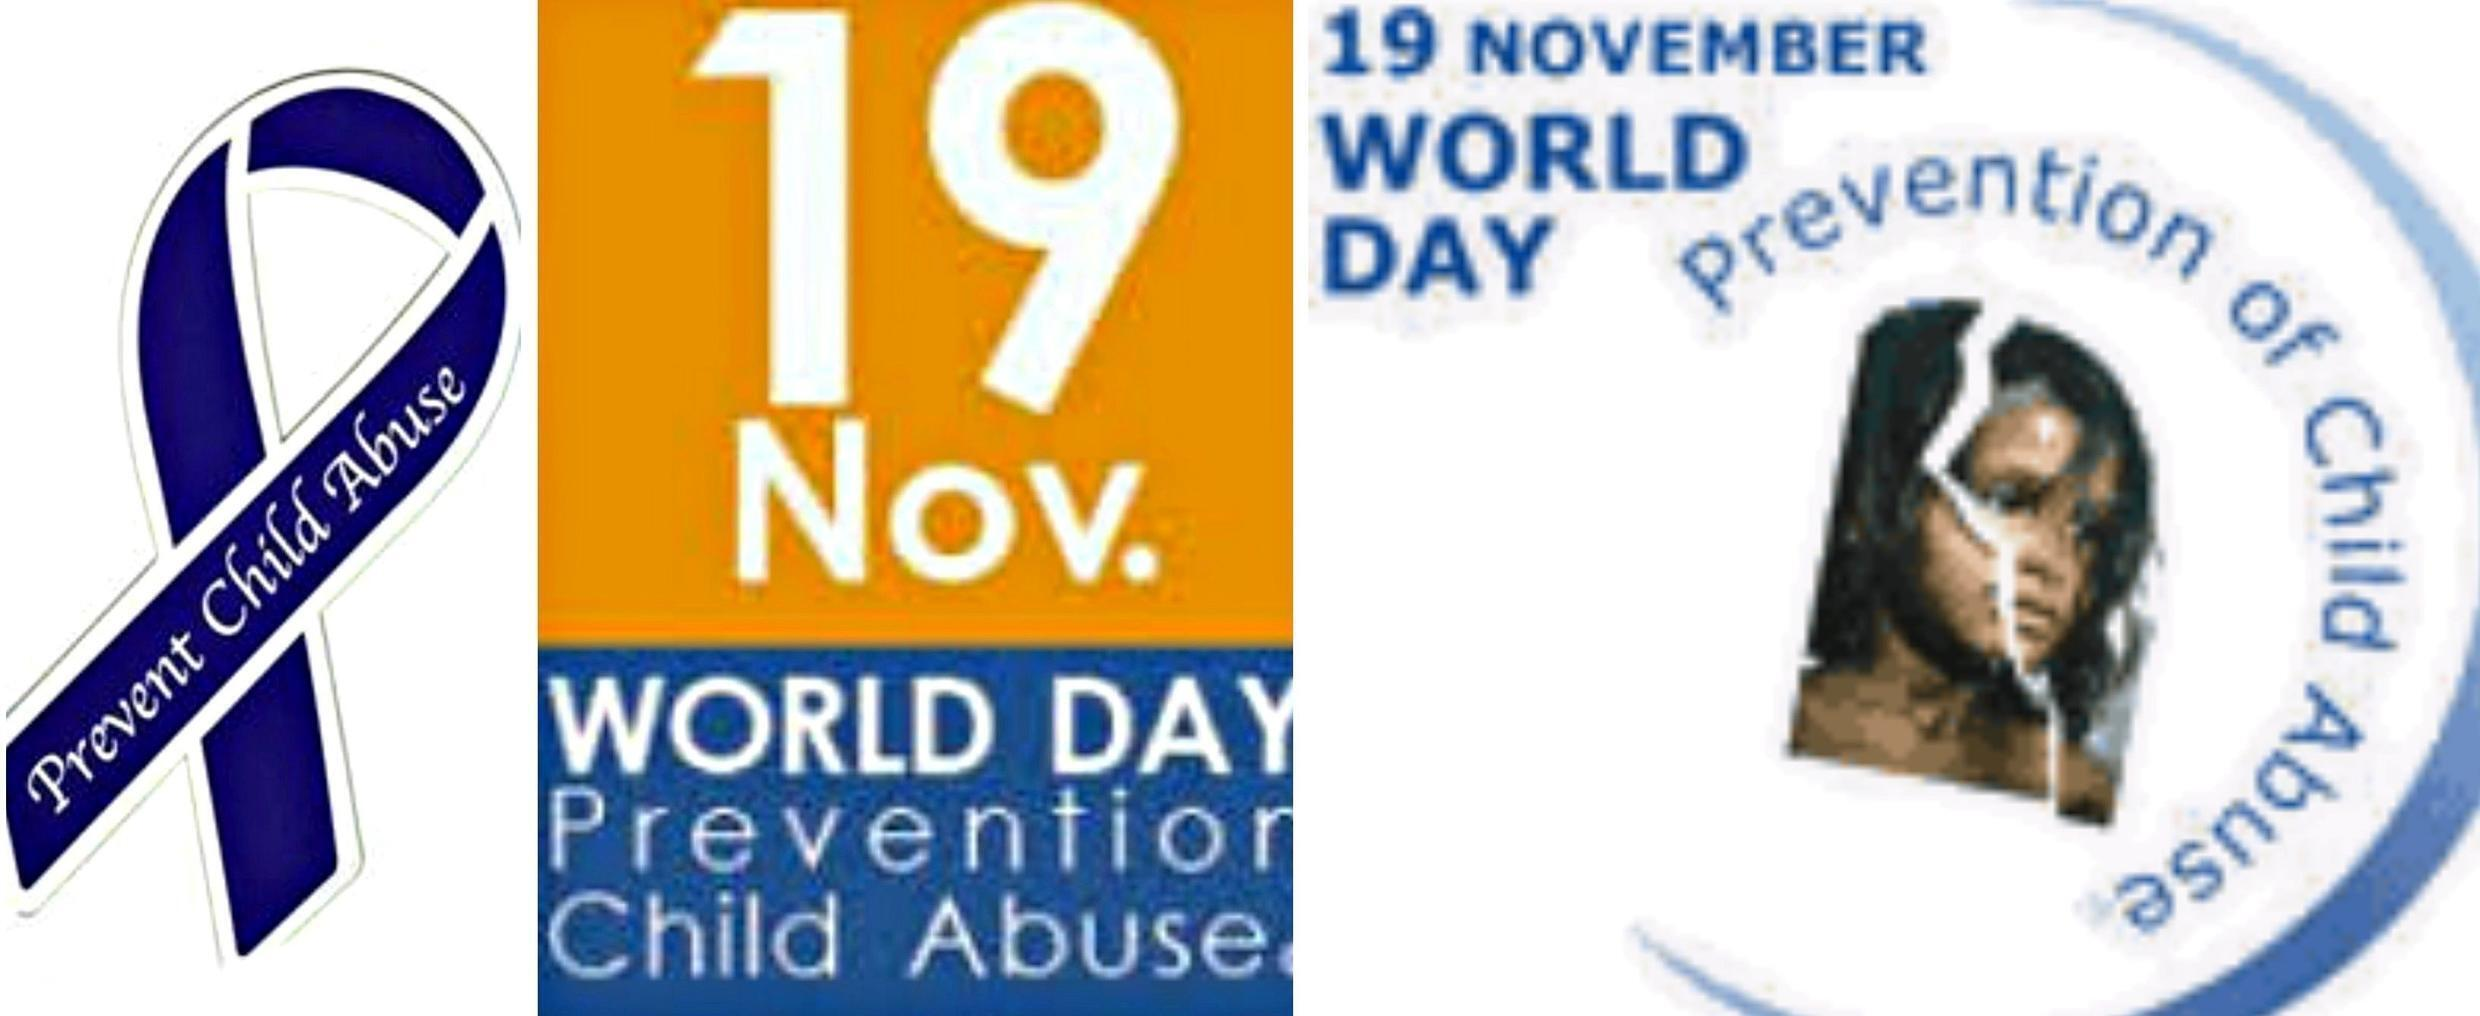 prevention_child_abuse_world_day